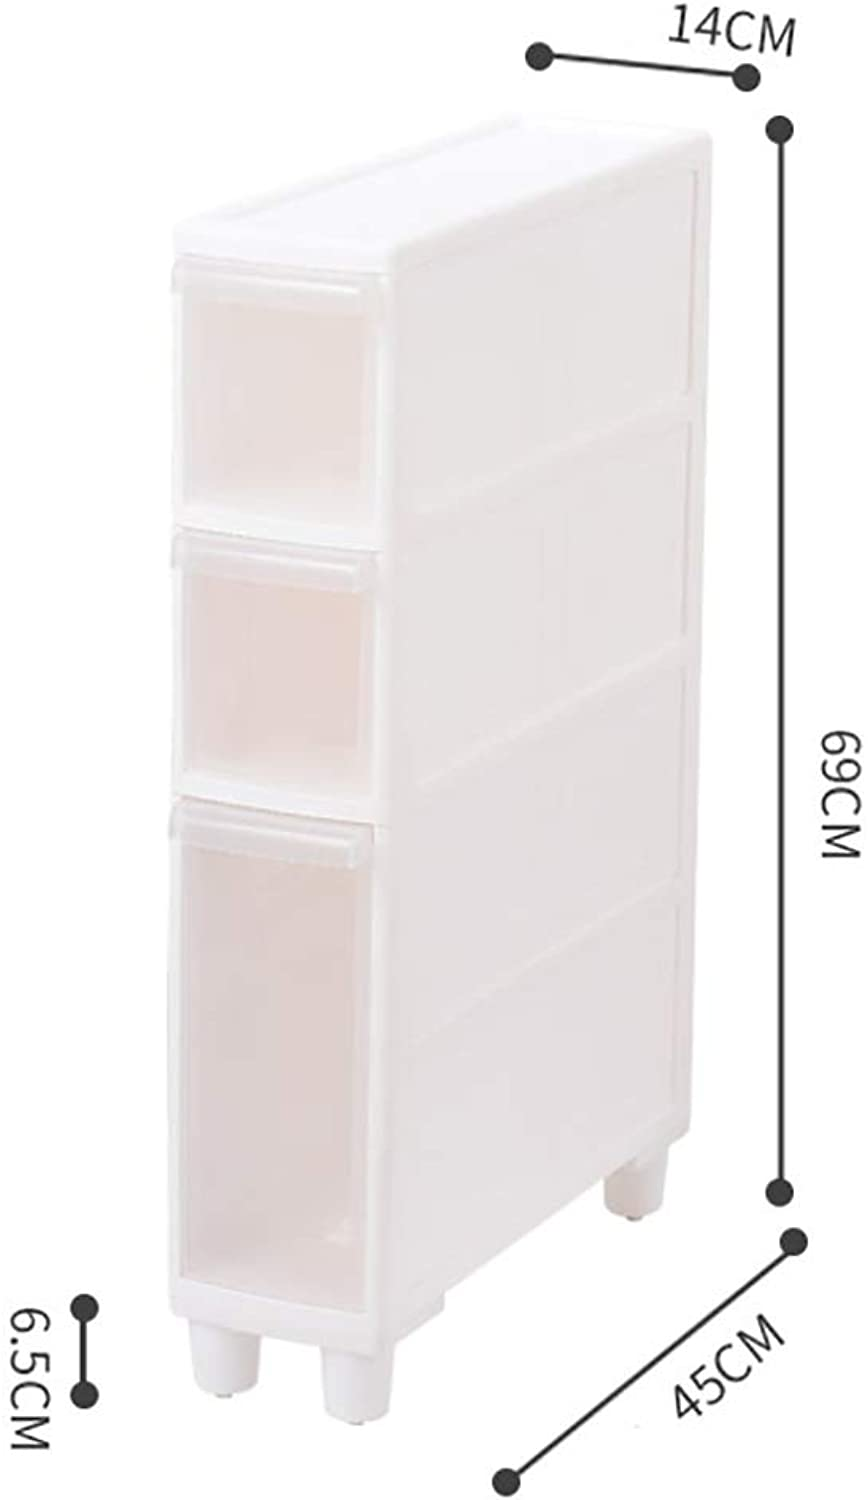 14CM Sandwich Storage Cabinet Refrigerator Rack Narrow Slit Kitchen Plastic Drawer Wheeled Locker Bathroom Shelf (color   C)